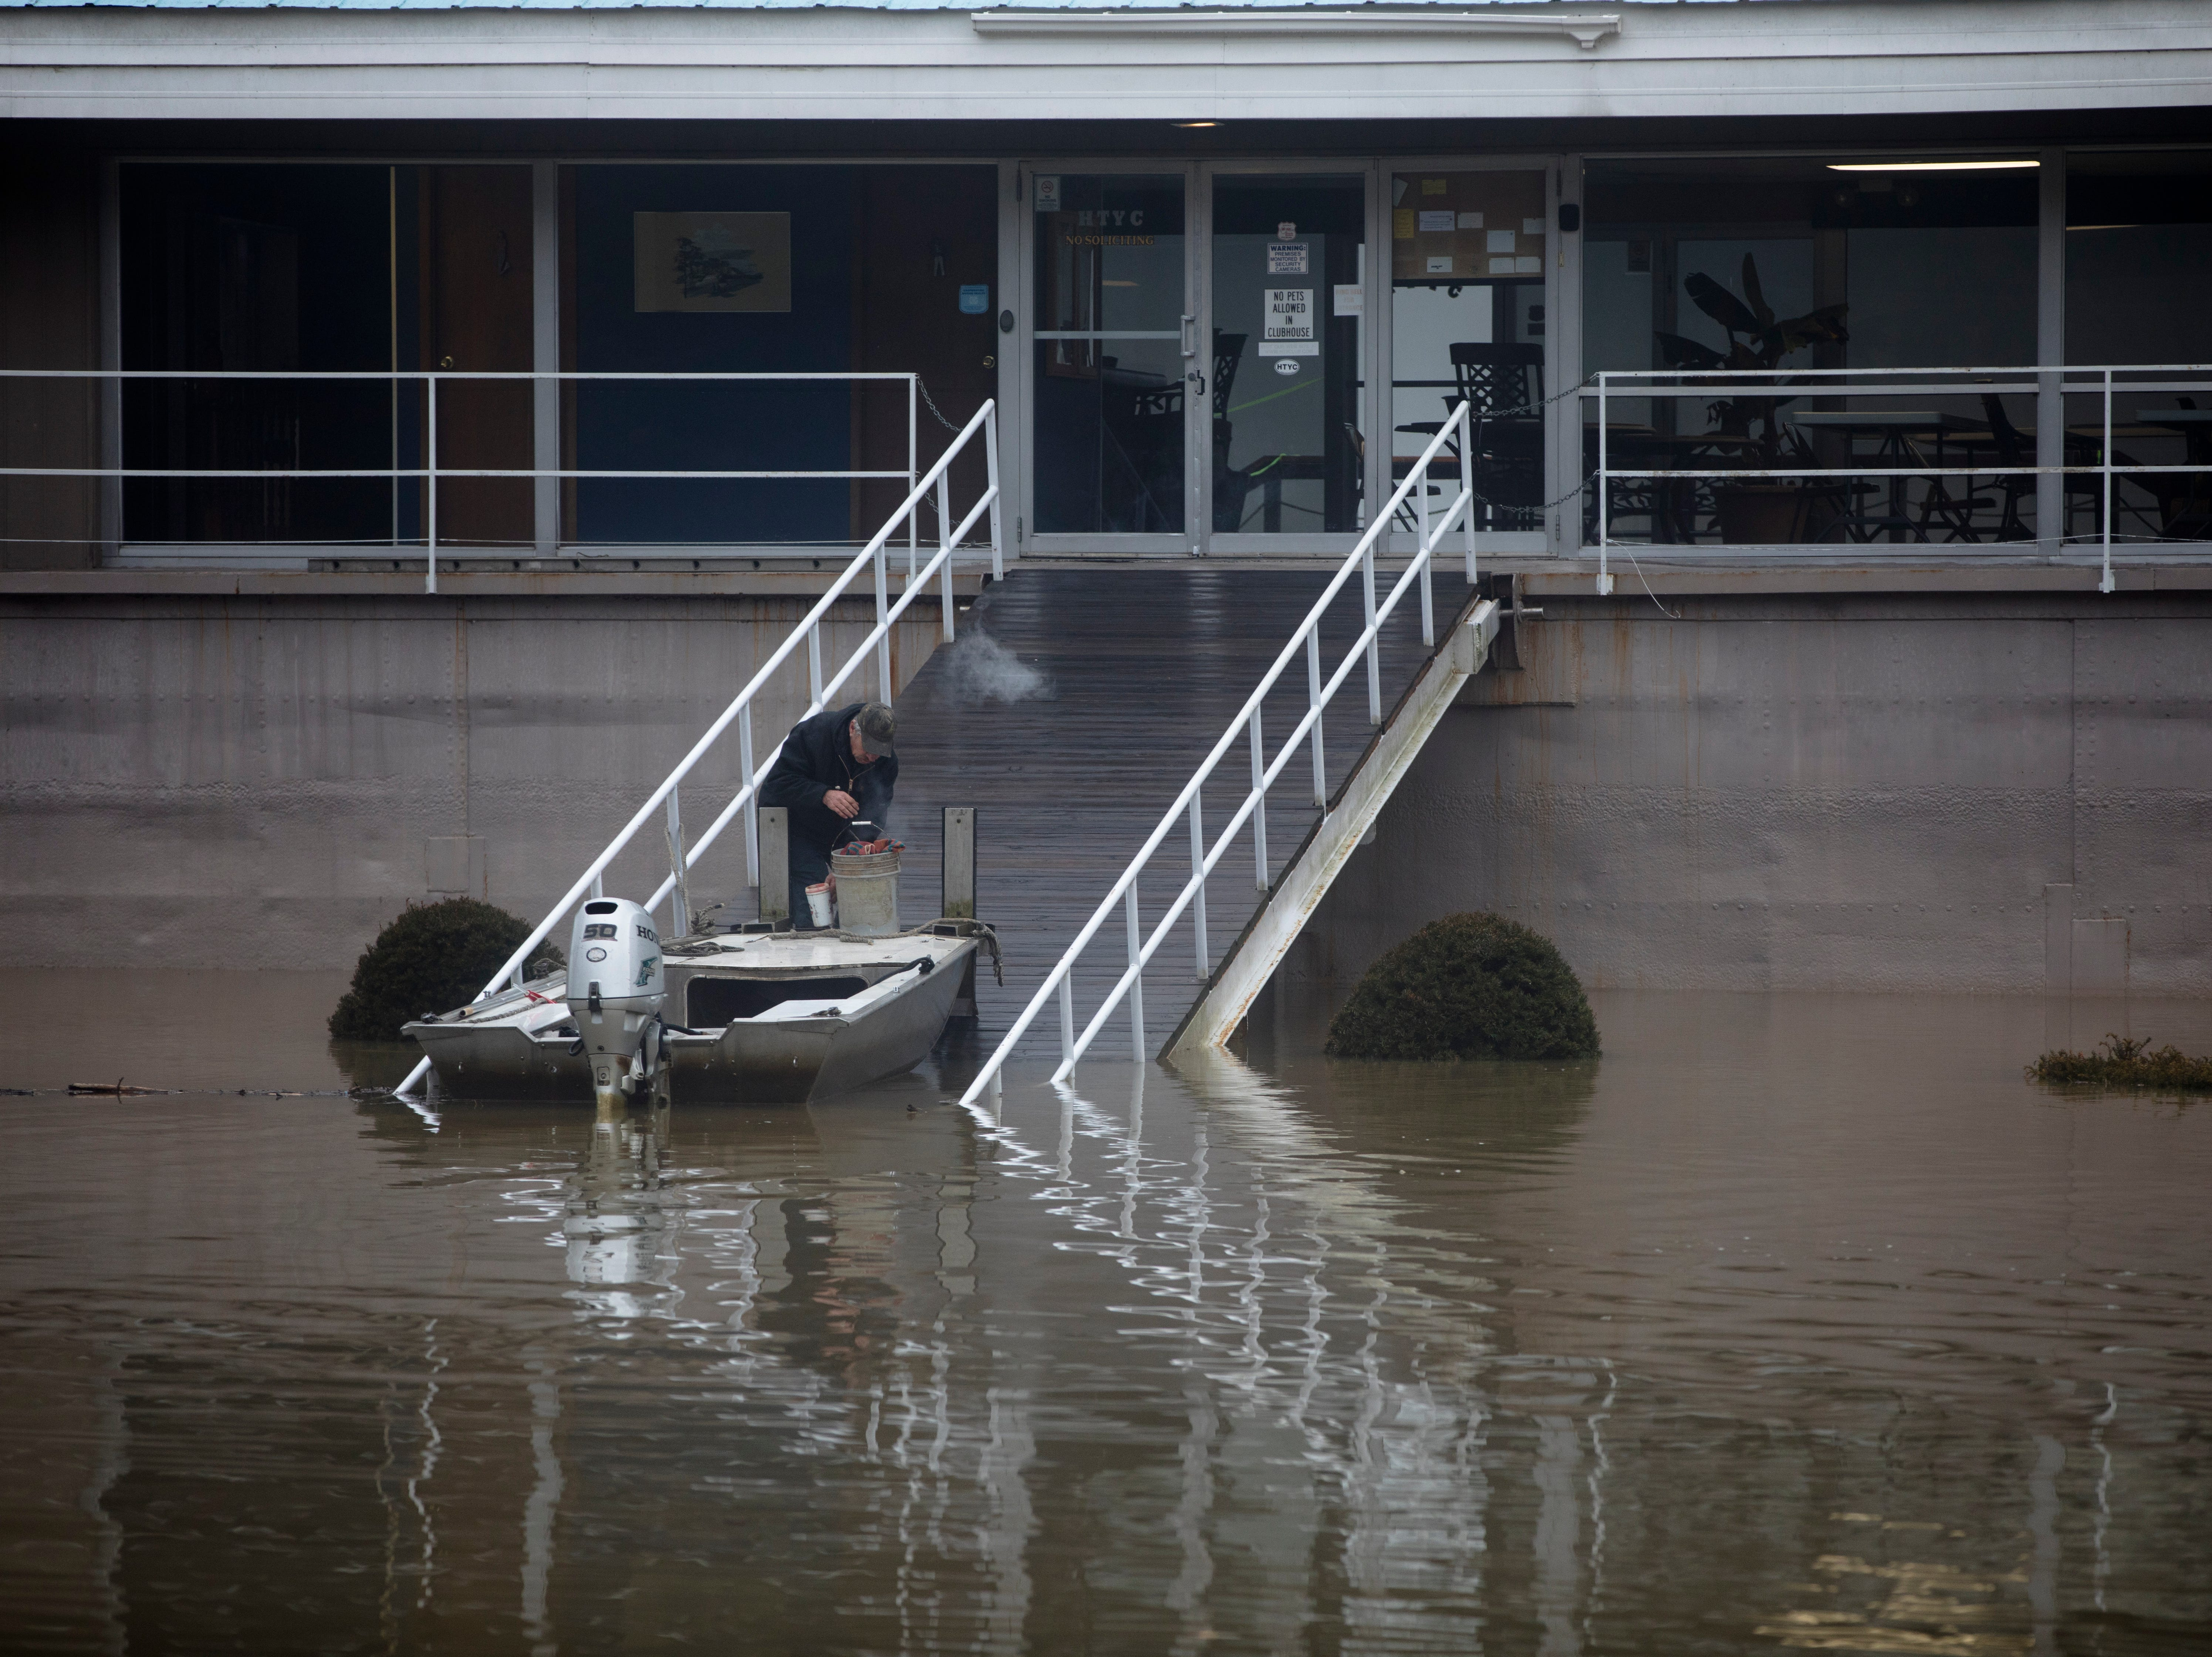 A man parks a boat in the parking lot of the Harbor Towne Yacht Club on Tuesday, Feb. 12, 2019.